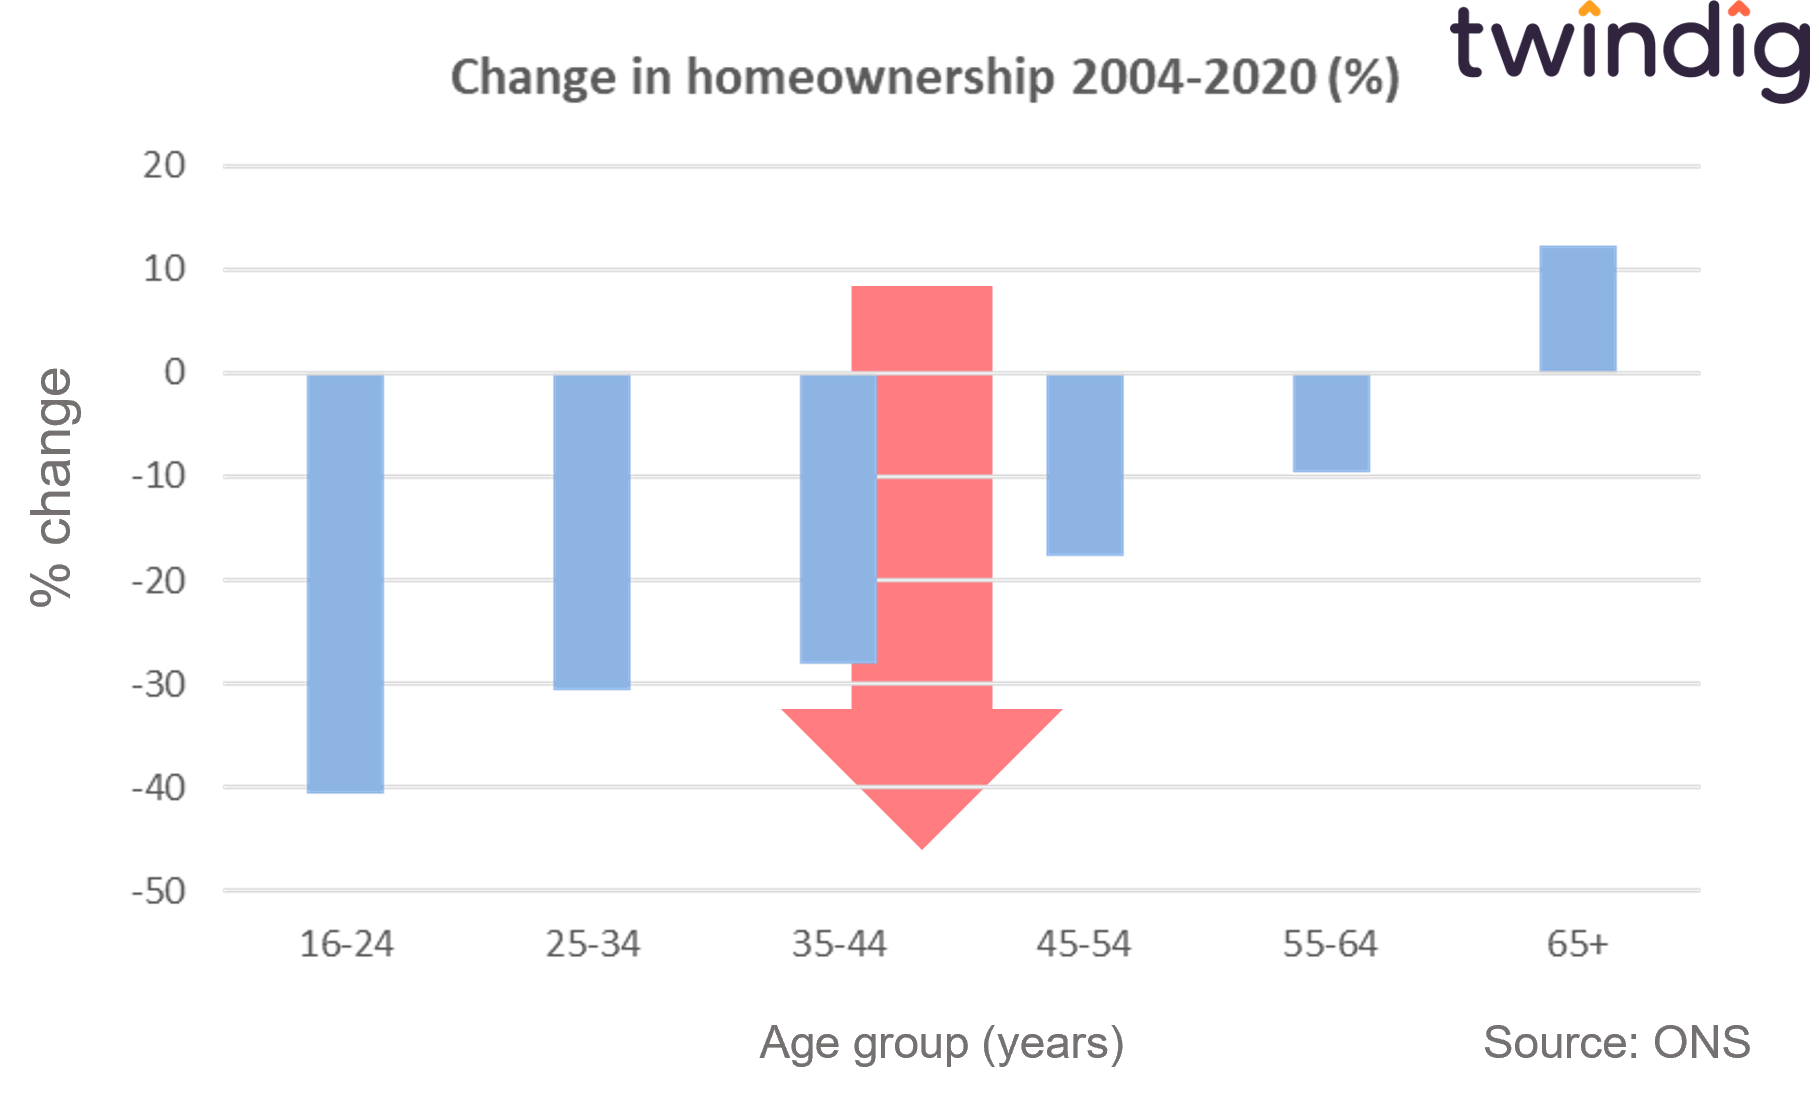 Graph showing fall in homeownership rates in the UK anthony codling twindig